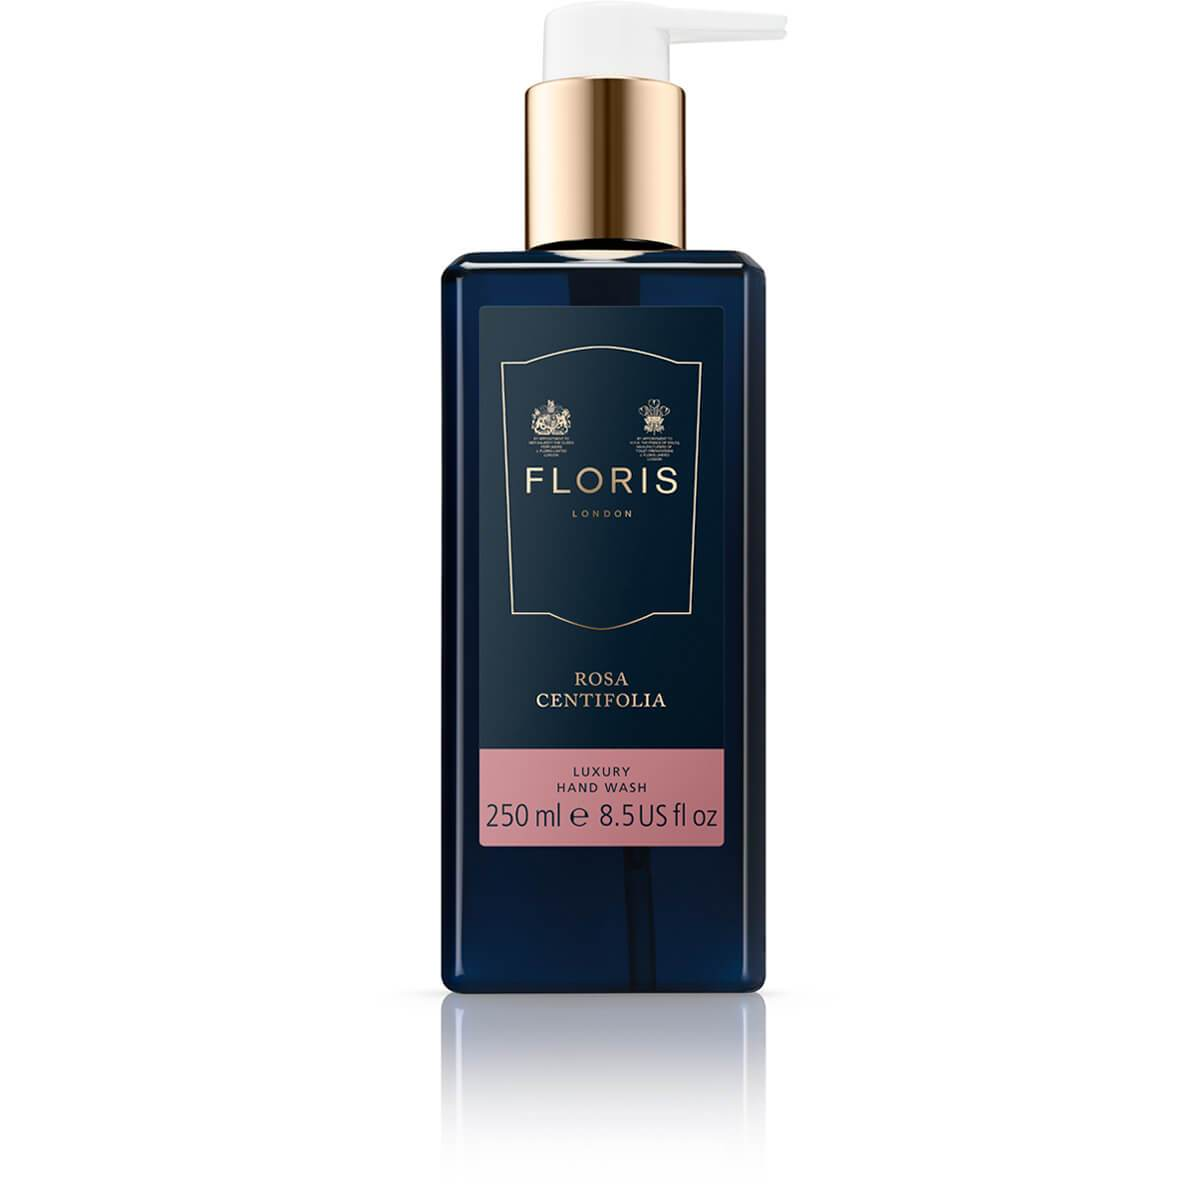 Rosa Centifolia - Luxury Hand Wash